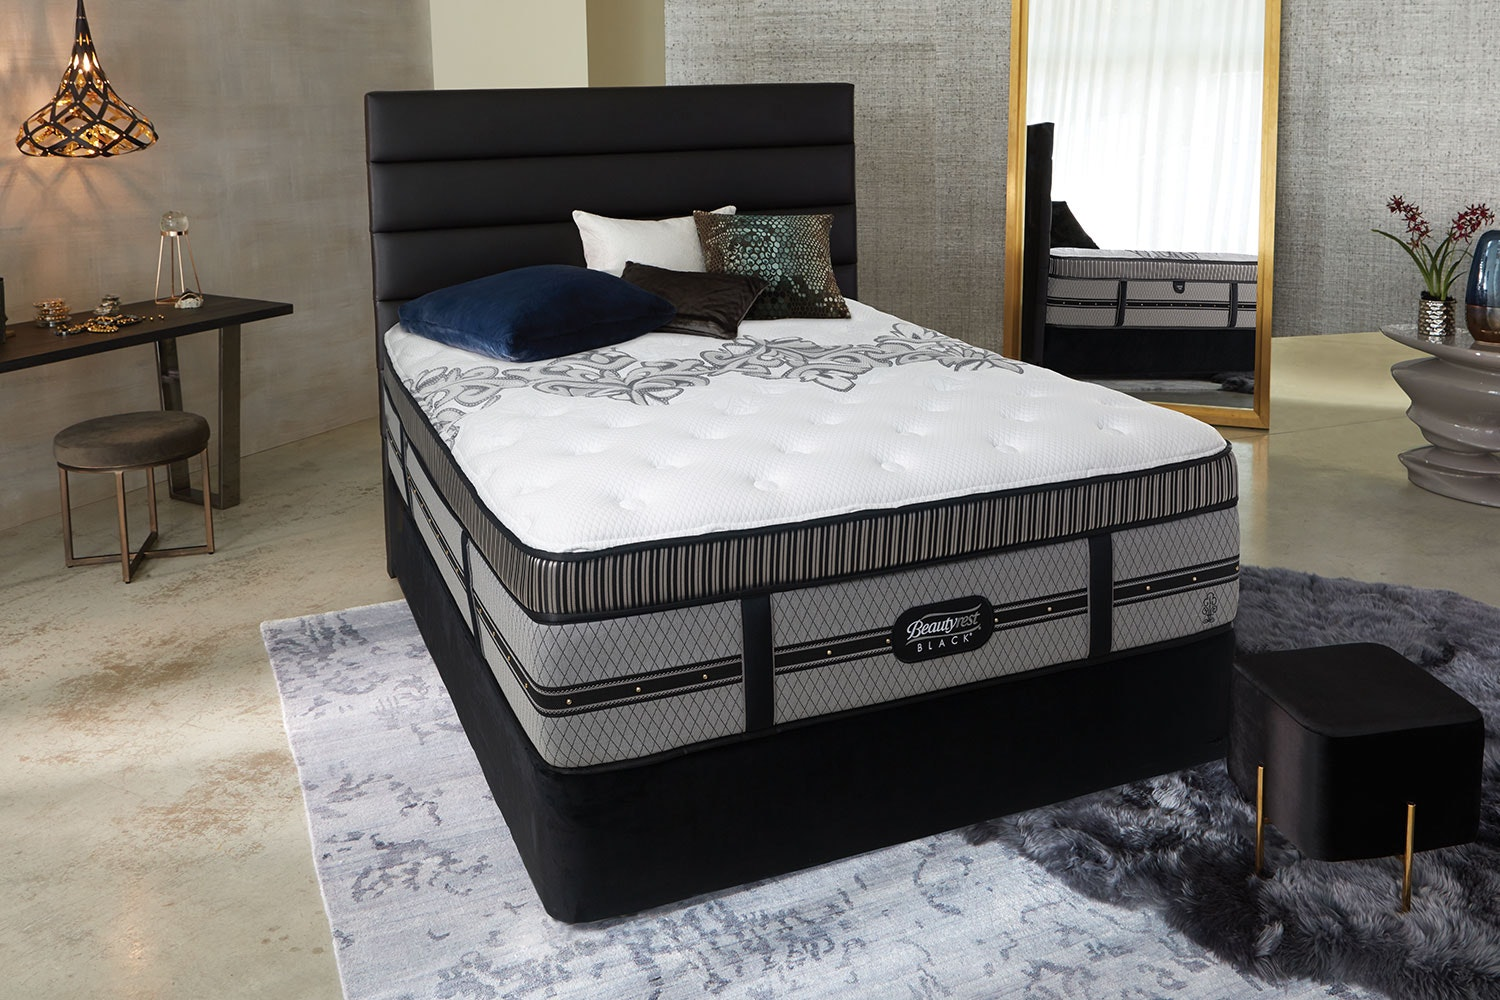 Empire Plush Queen Bed by Beautyrest Black